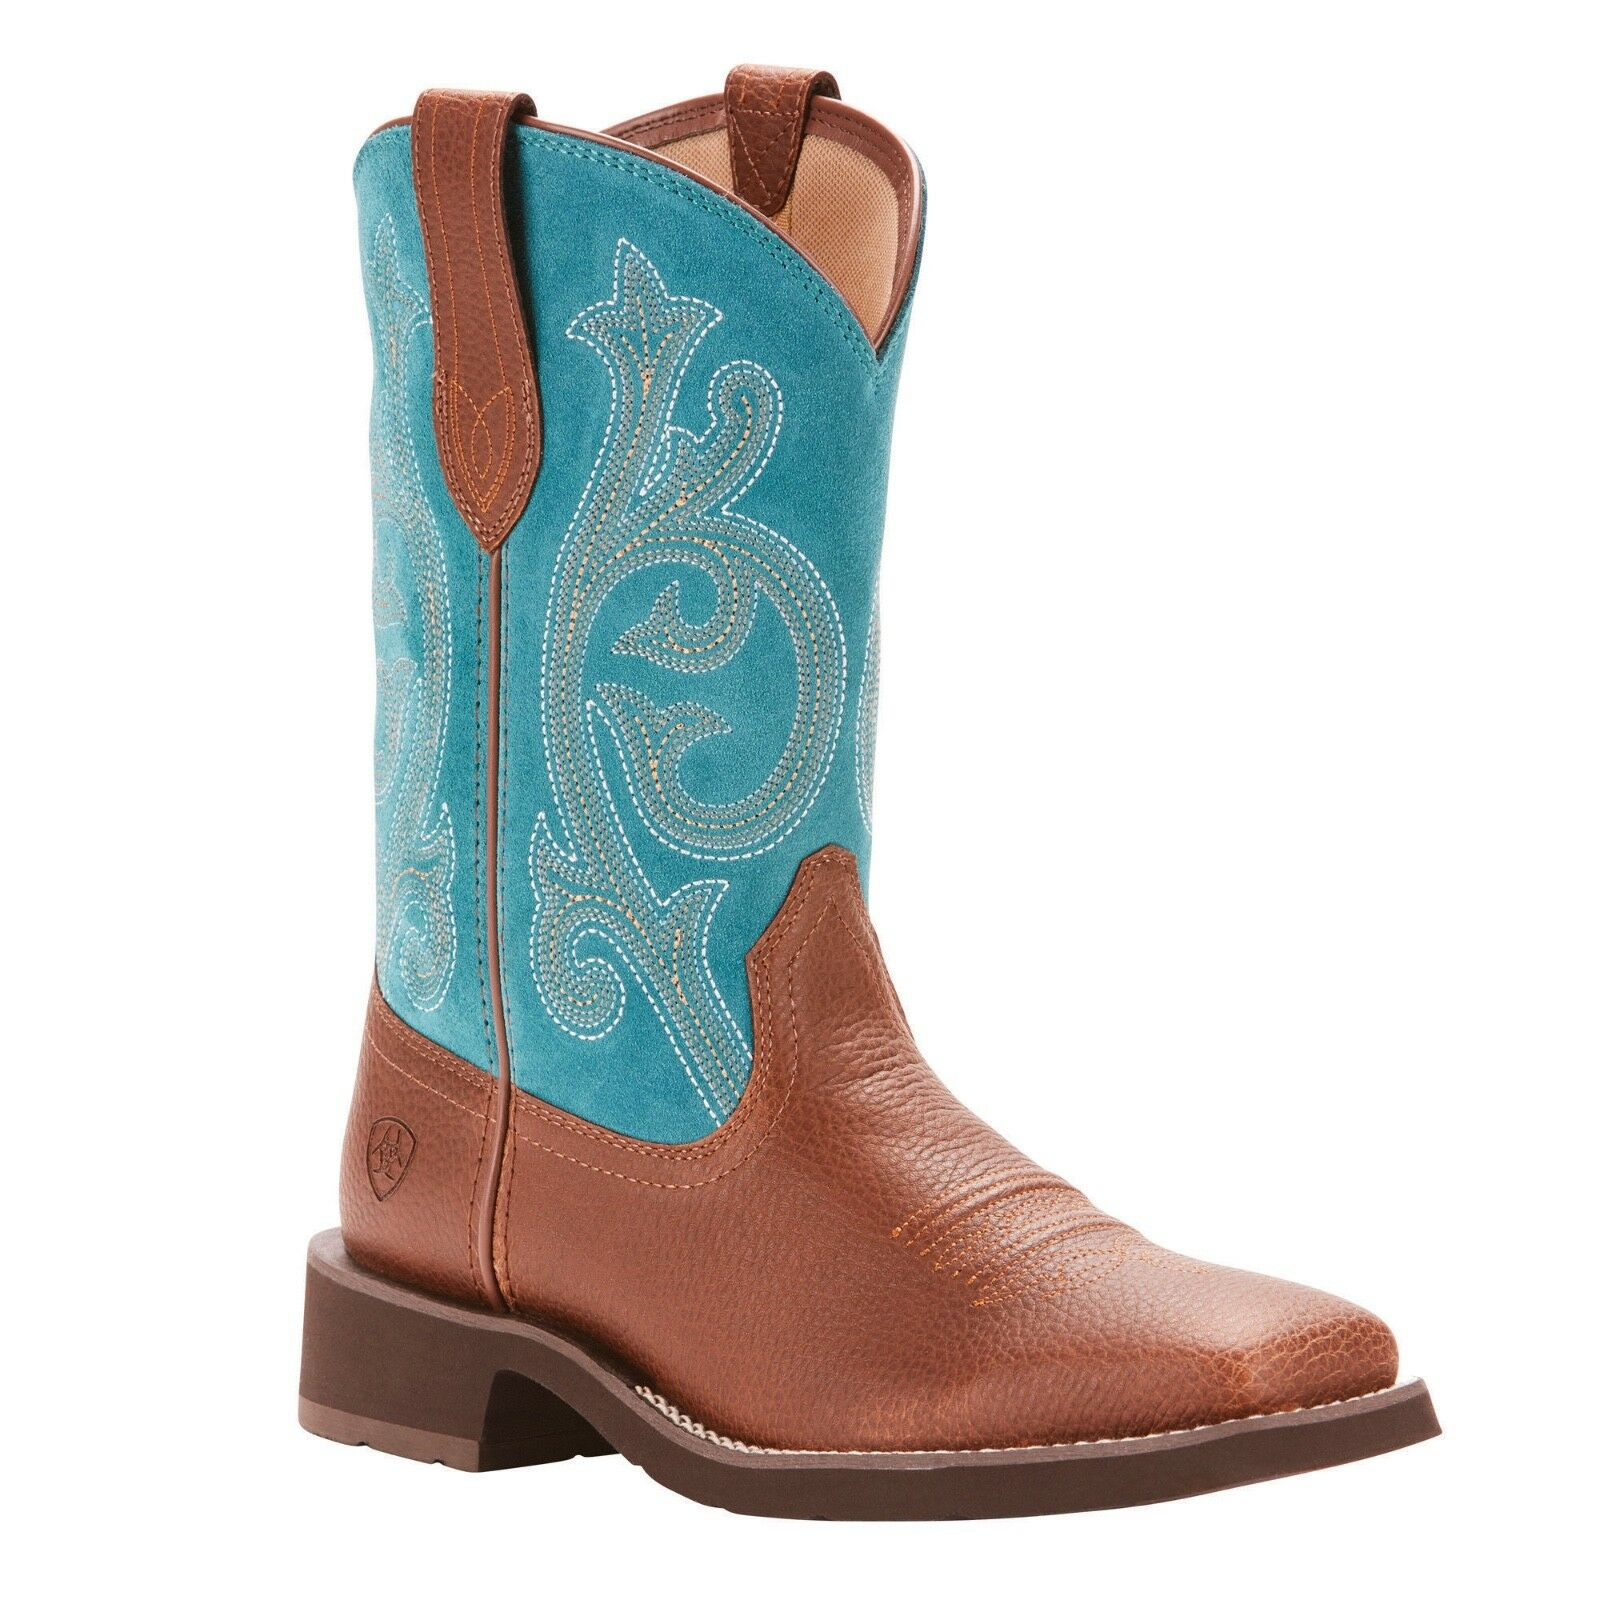 Ariat® Ladies Prim pink Pebbled Brown & Turquoise Boots 10025031